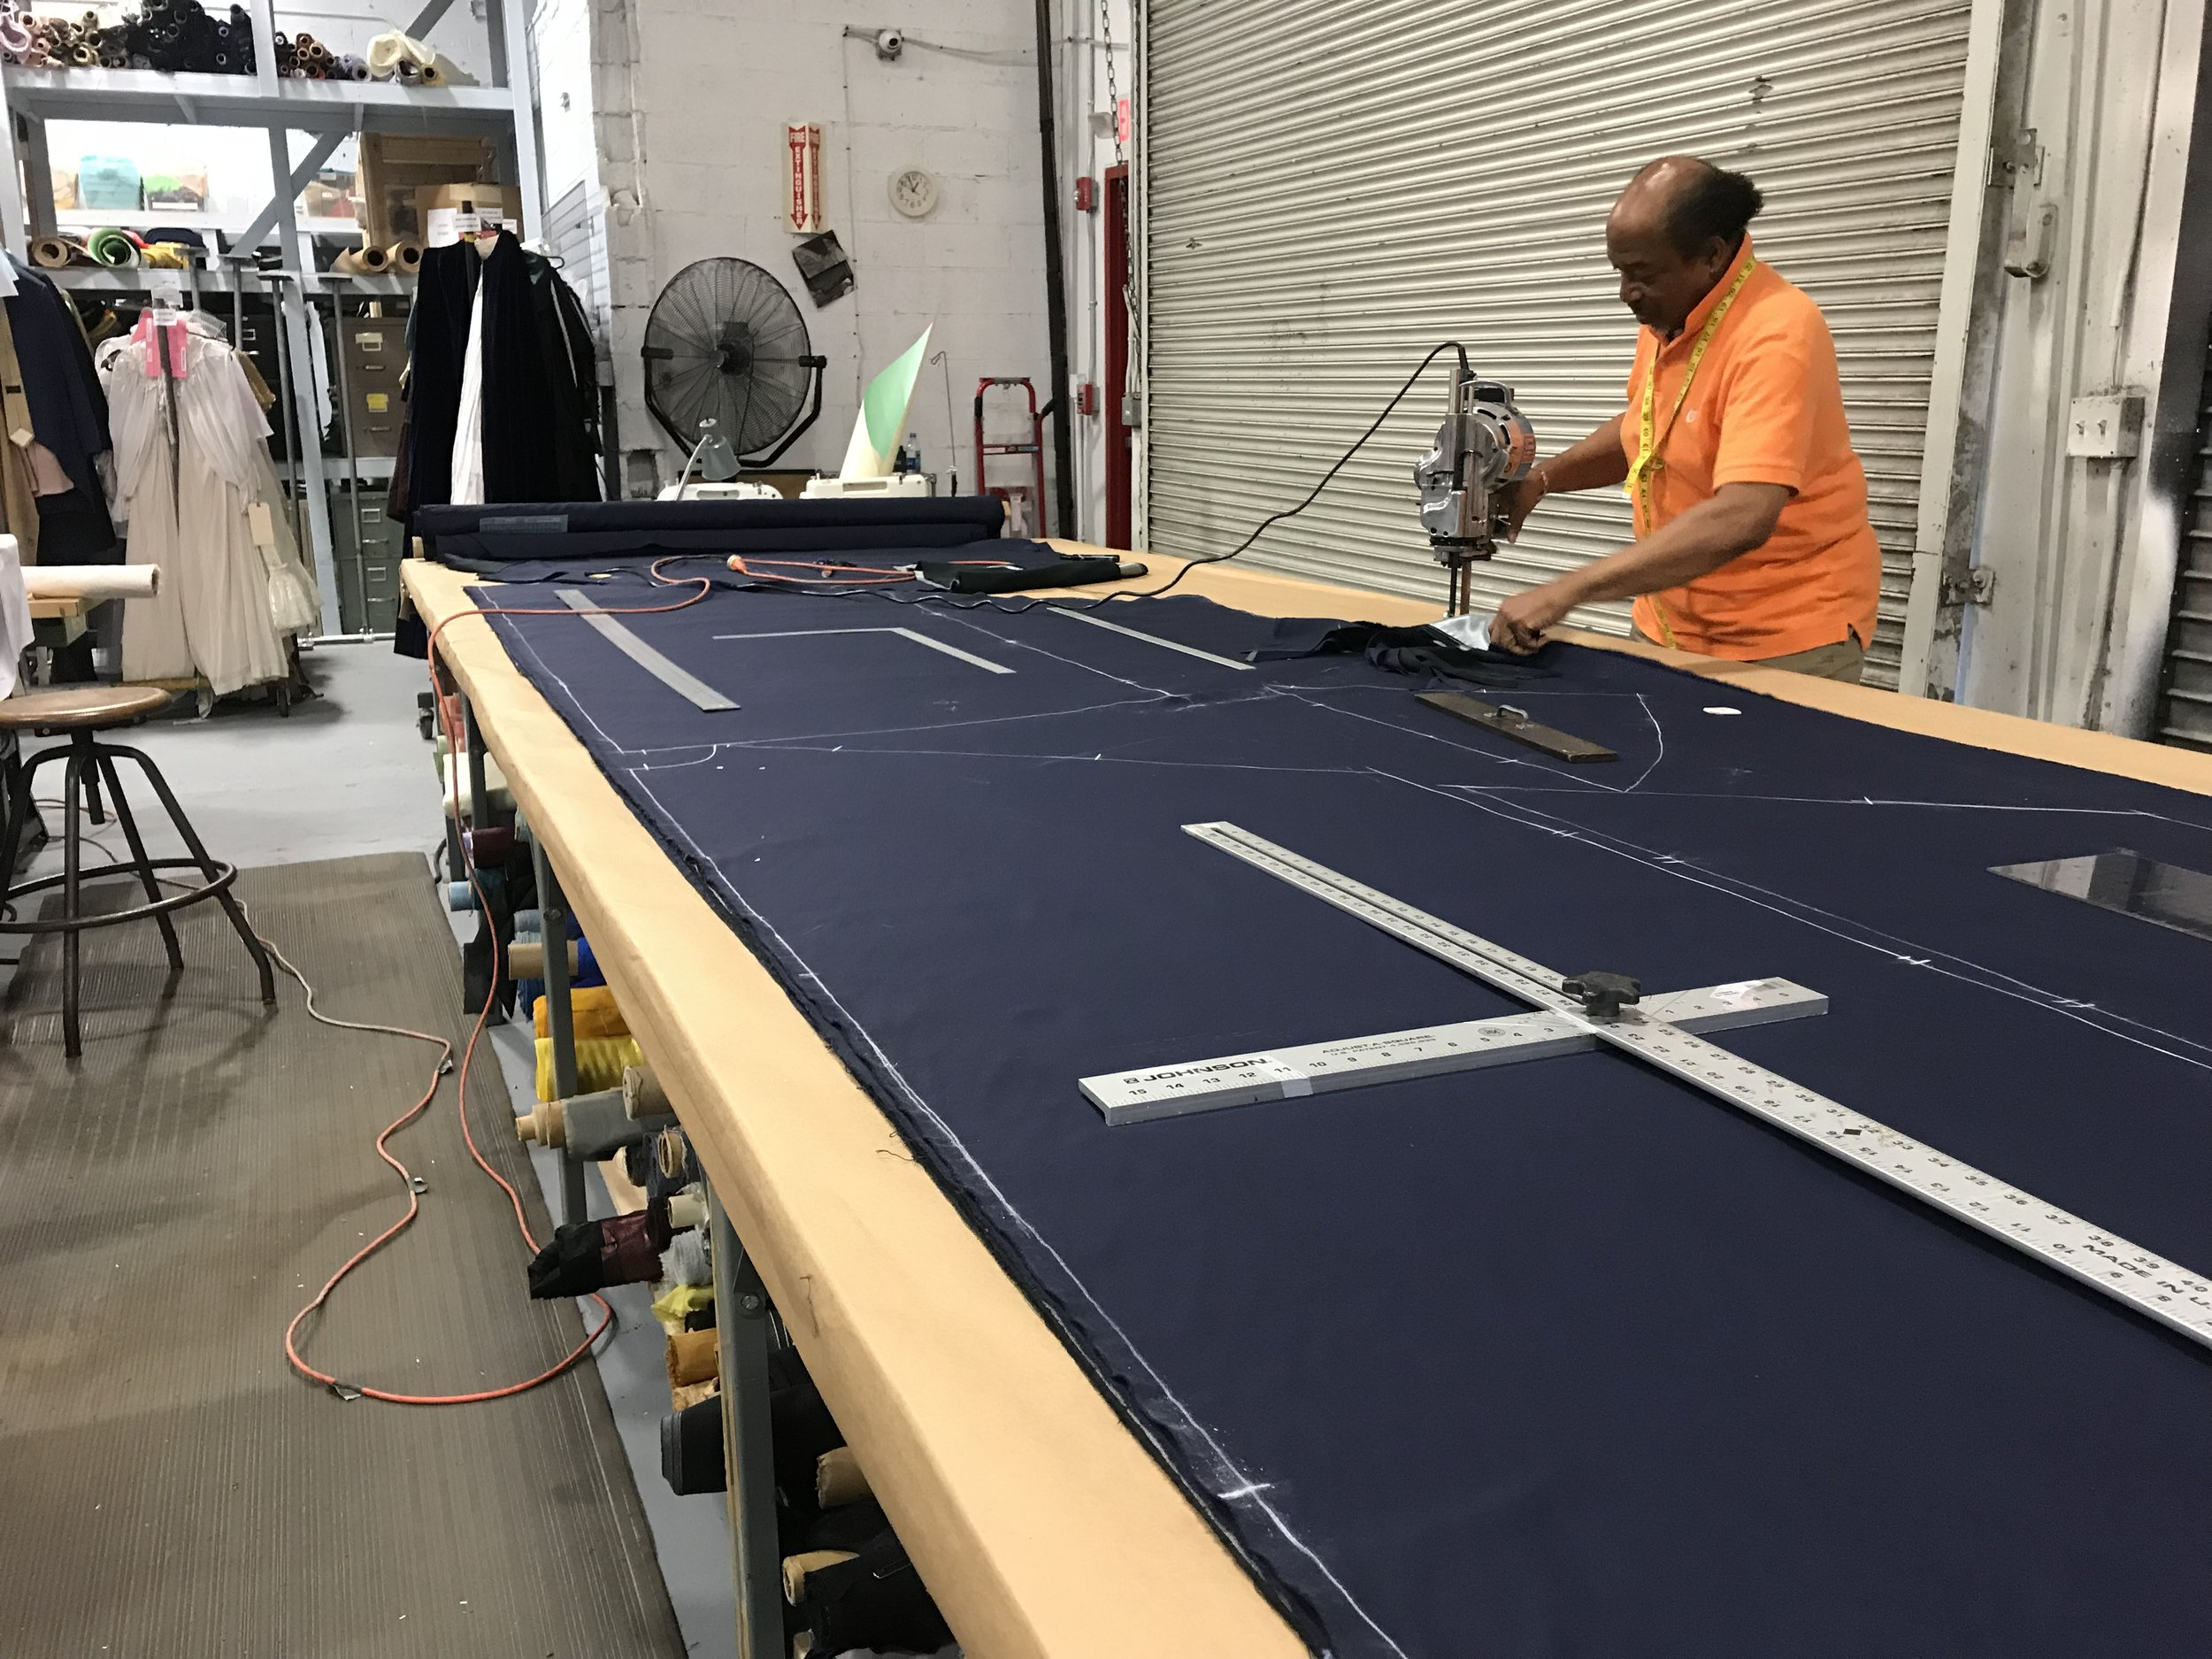 Above is Robert who built the capes, he patterned, chalked and cut the pieces that were in both capes, rolled out all 4 fabrics (outer & lining). Most of the time was spent in the prep, aka measure twice cut once.